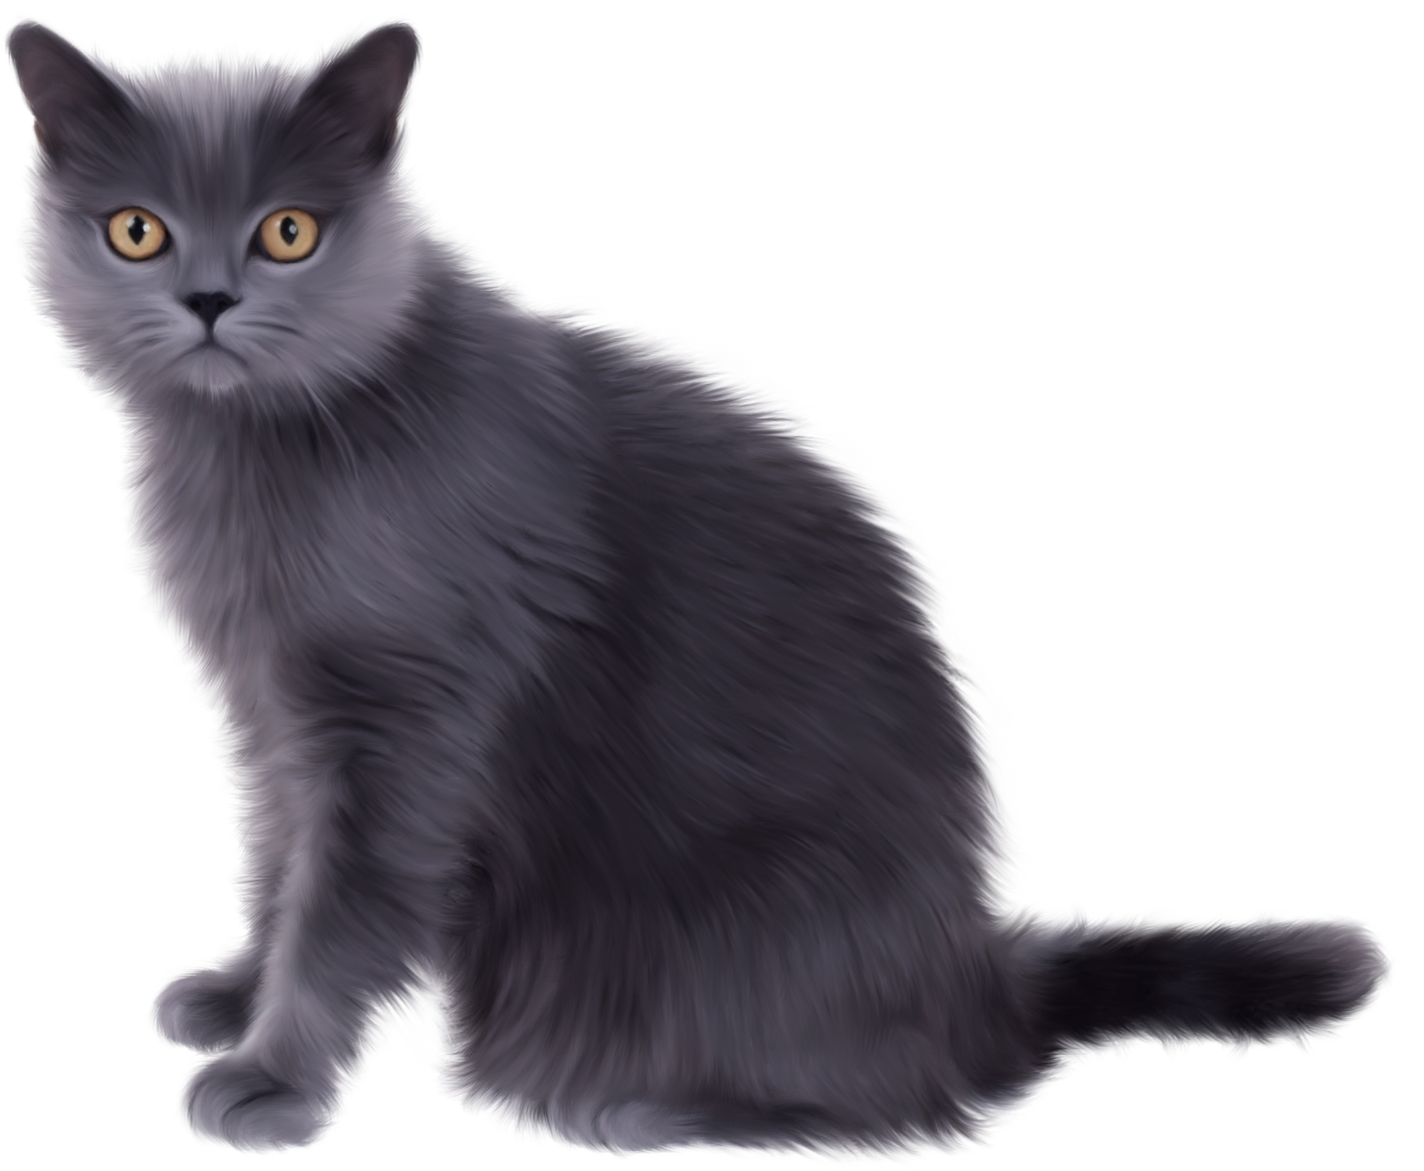 Kittens clipart real, Kittens real Transparent FREE for